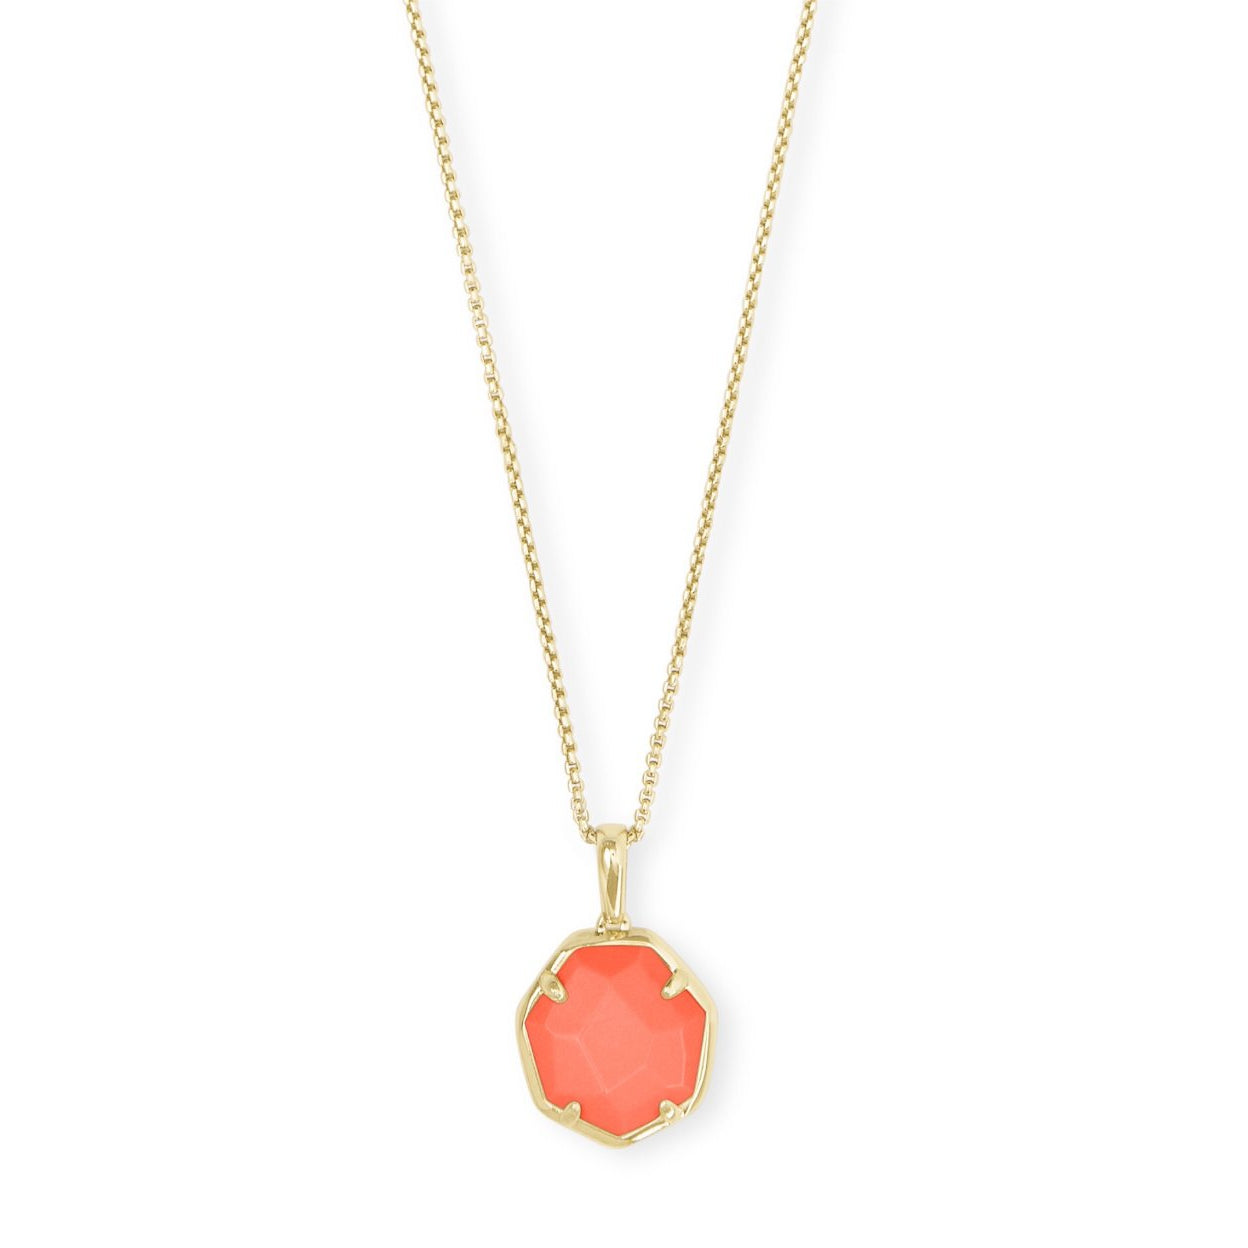 Cynthia Small Long Pendant in Gold Bright Coral